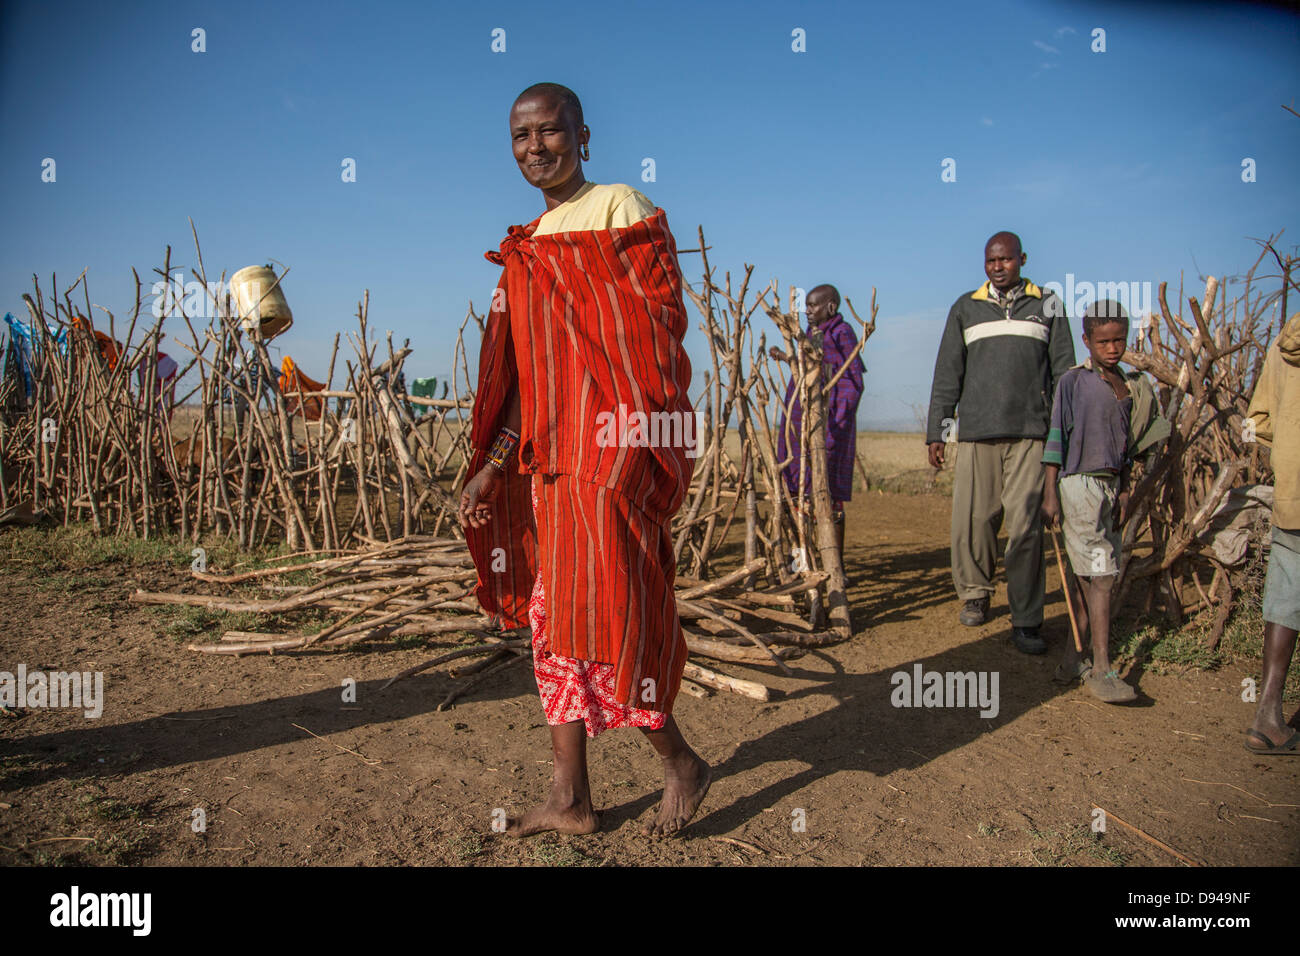 Maasai family in Rift Valley of Africa herding goats Stock Photo